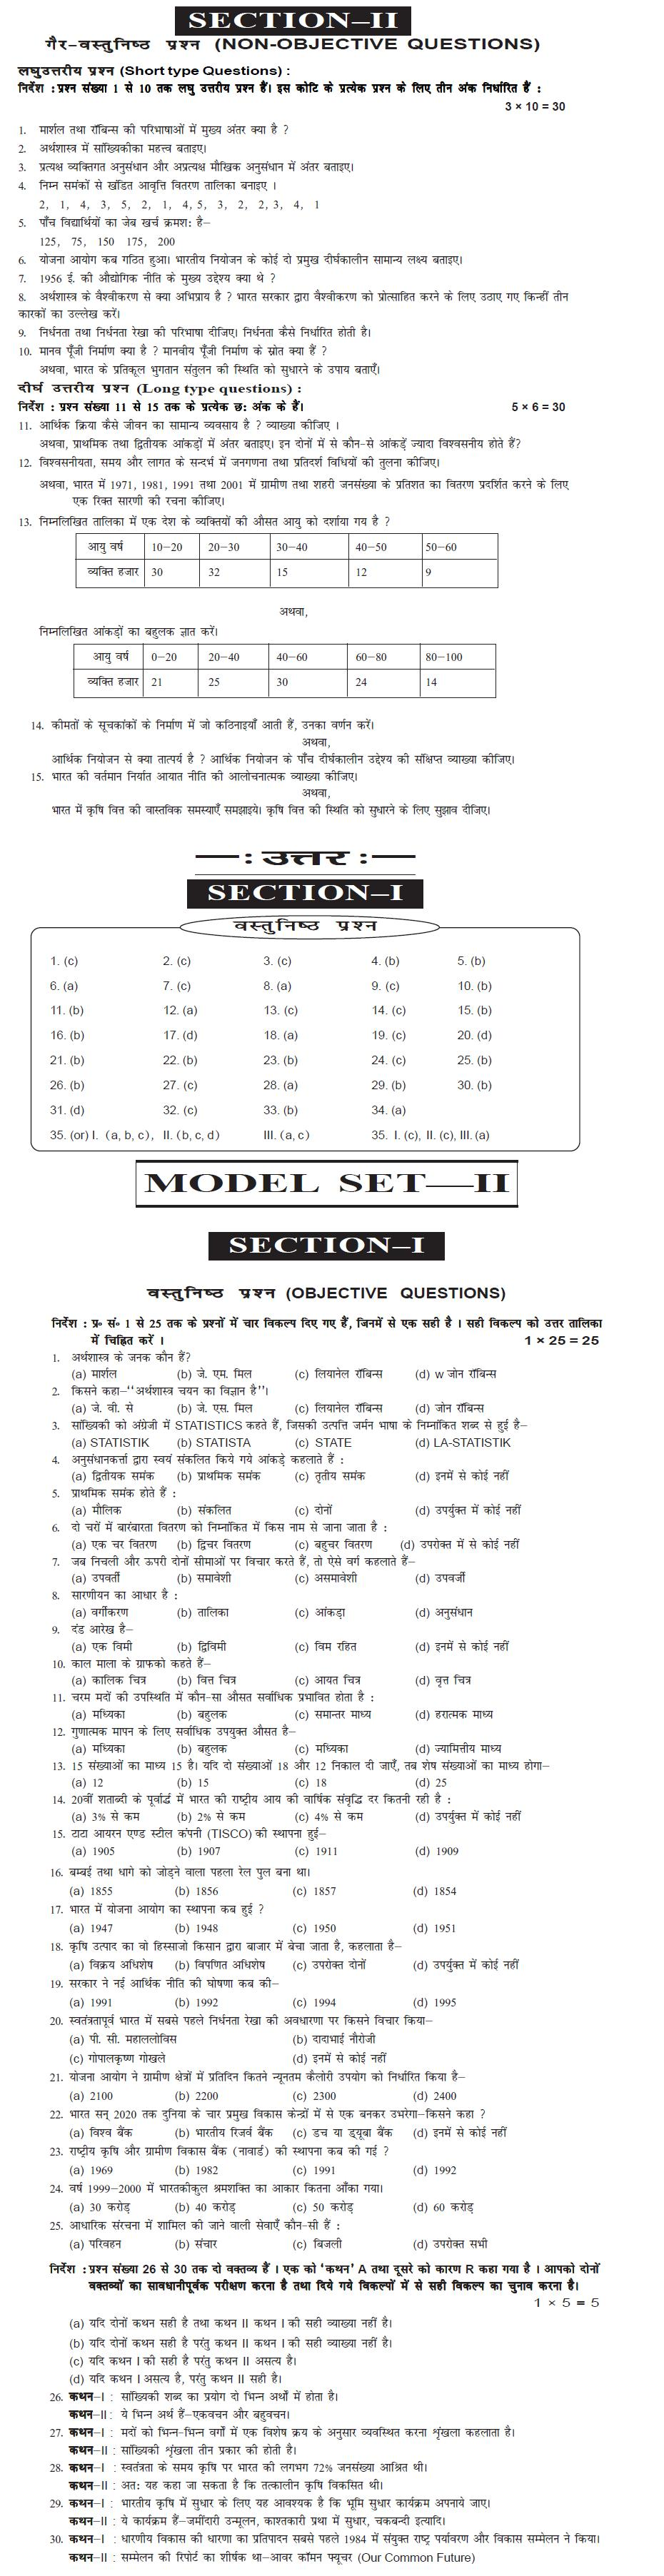 Bihar Board Class XI Arts Model Question Papers - Economics